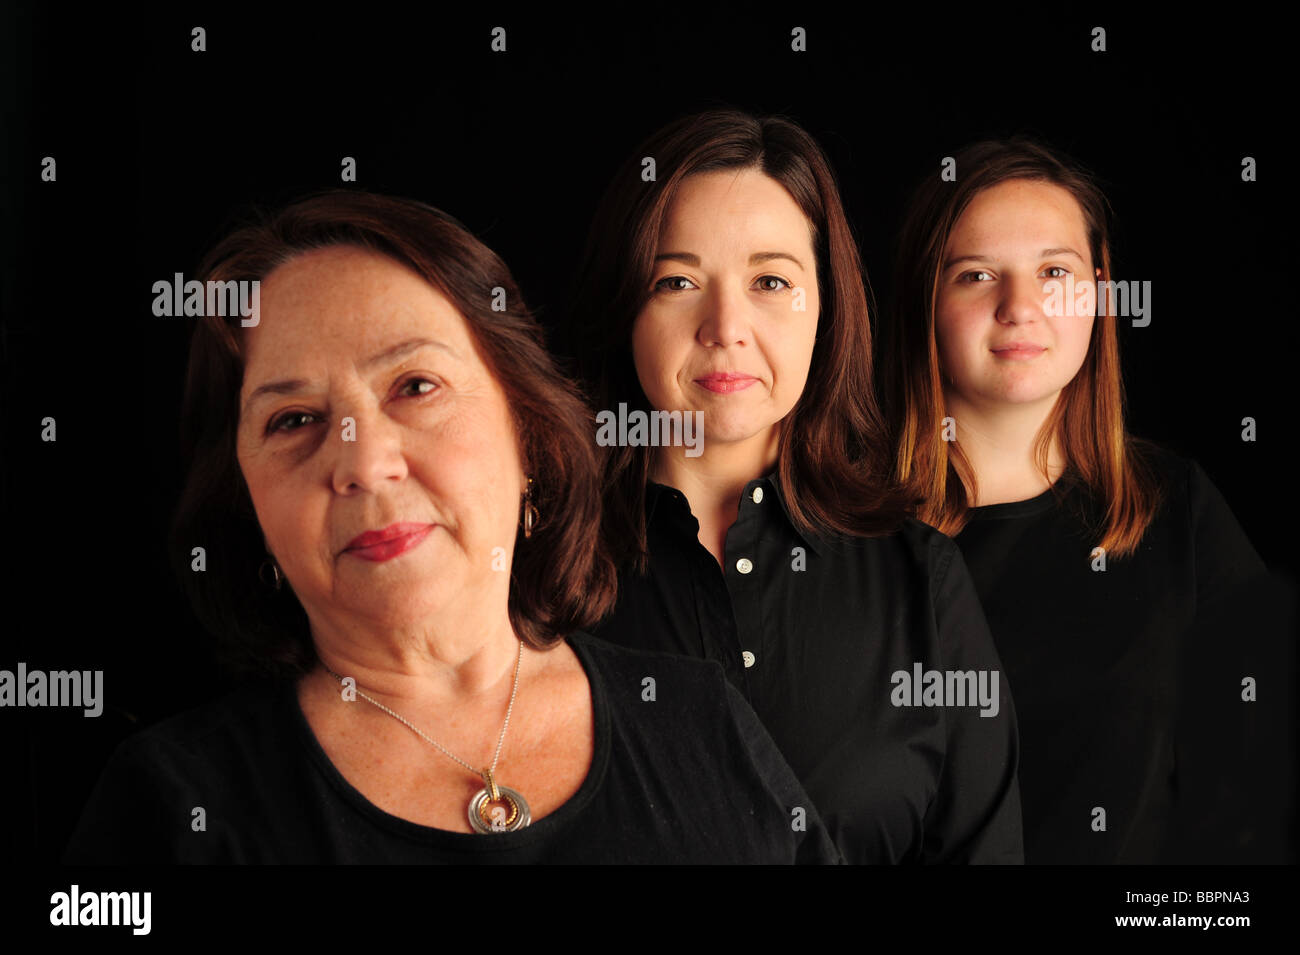 three-3-generations-of-hispanic-women-BBPNA3.jpg